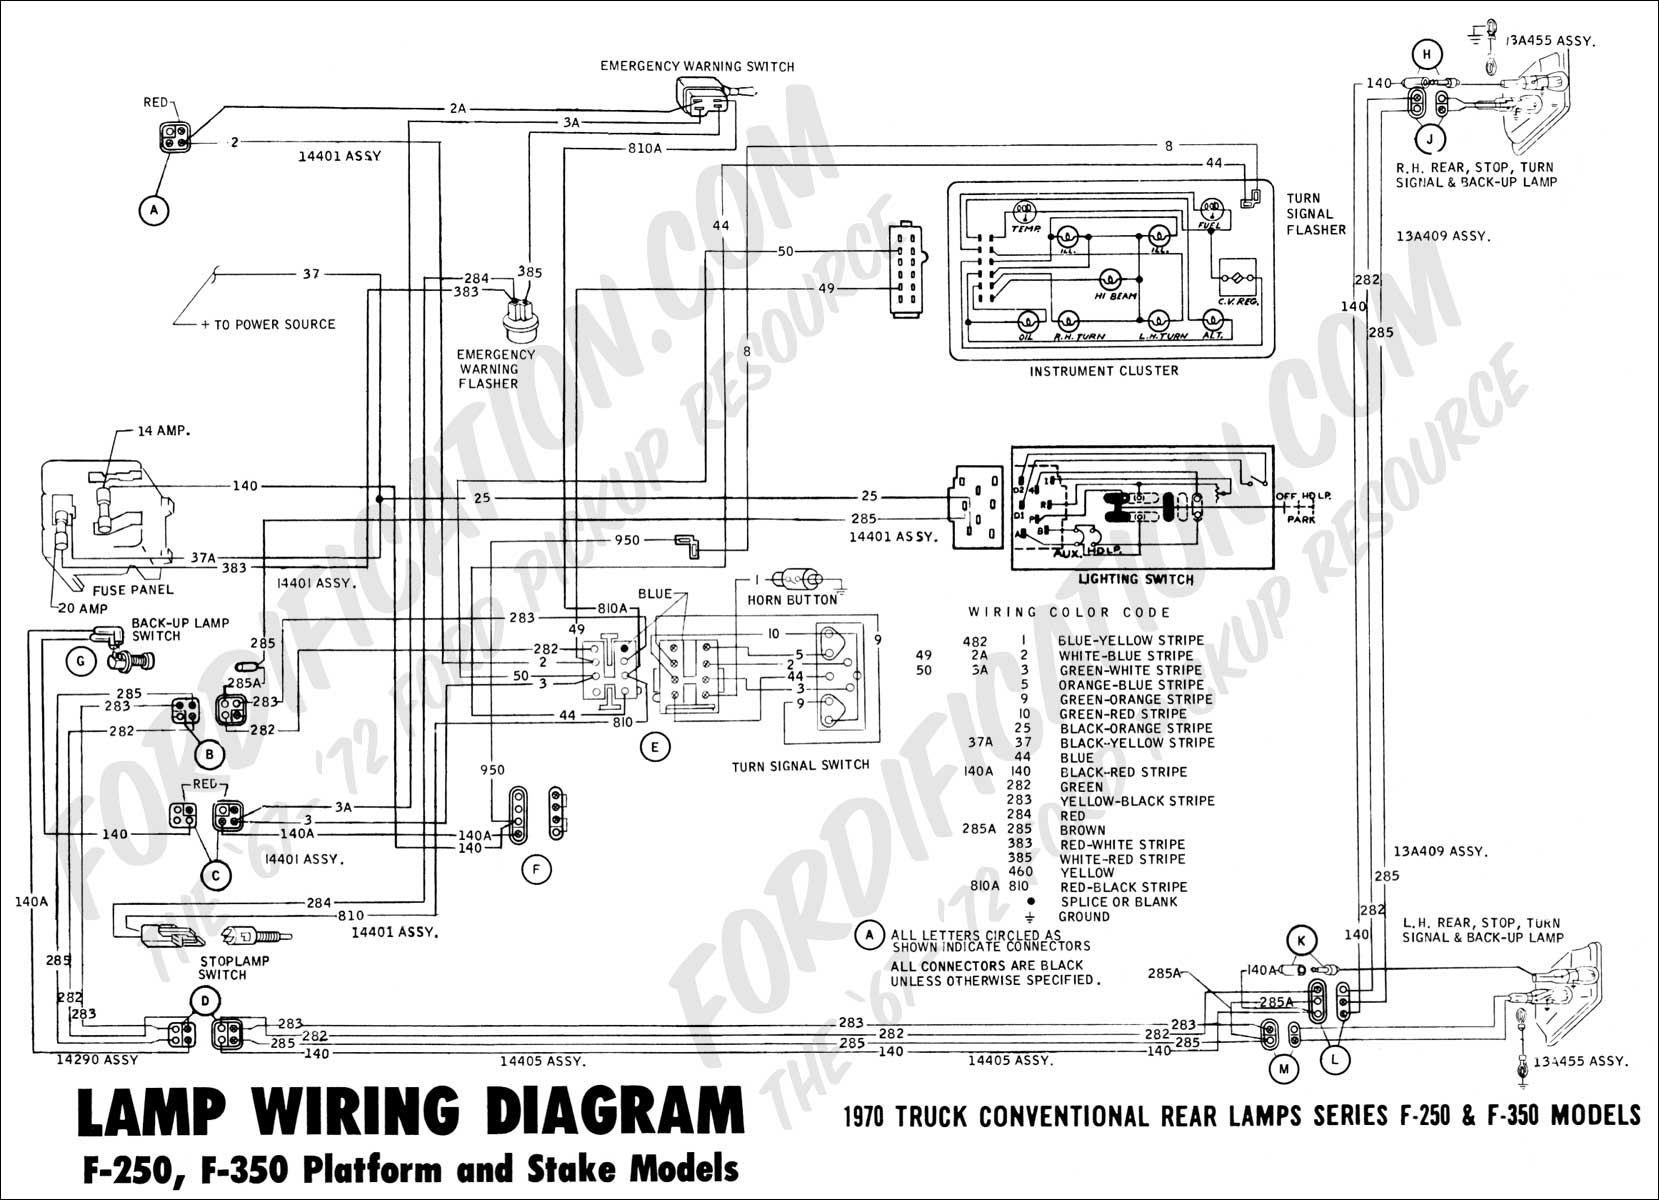 ford truck technical drawings and schematics - section h ... 1964 ford f 250 wiring diagram 2006 ford f 250 wiring diagram roof